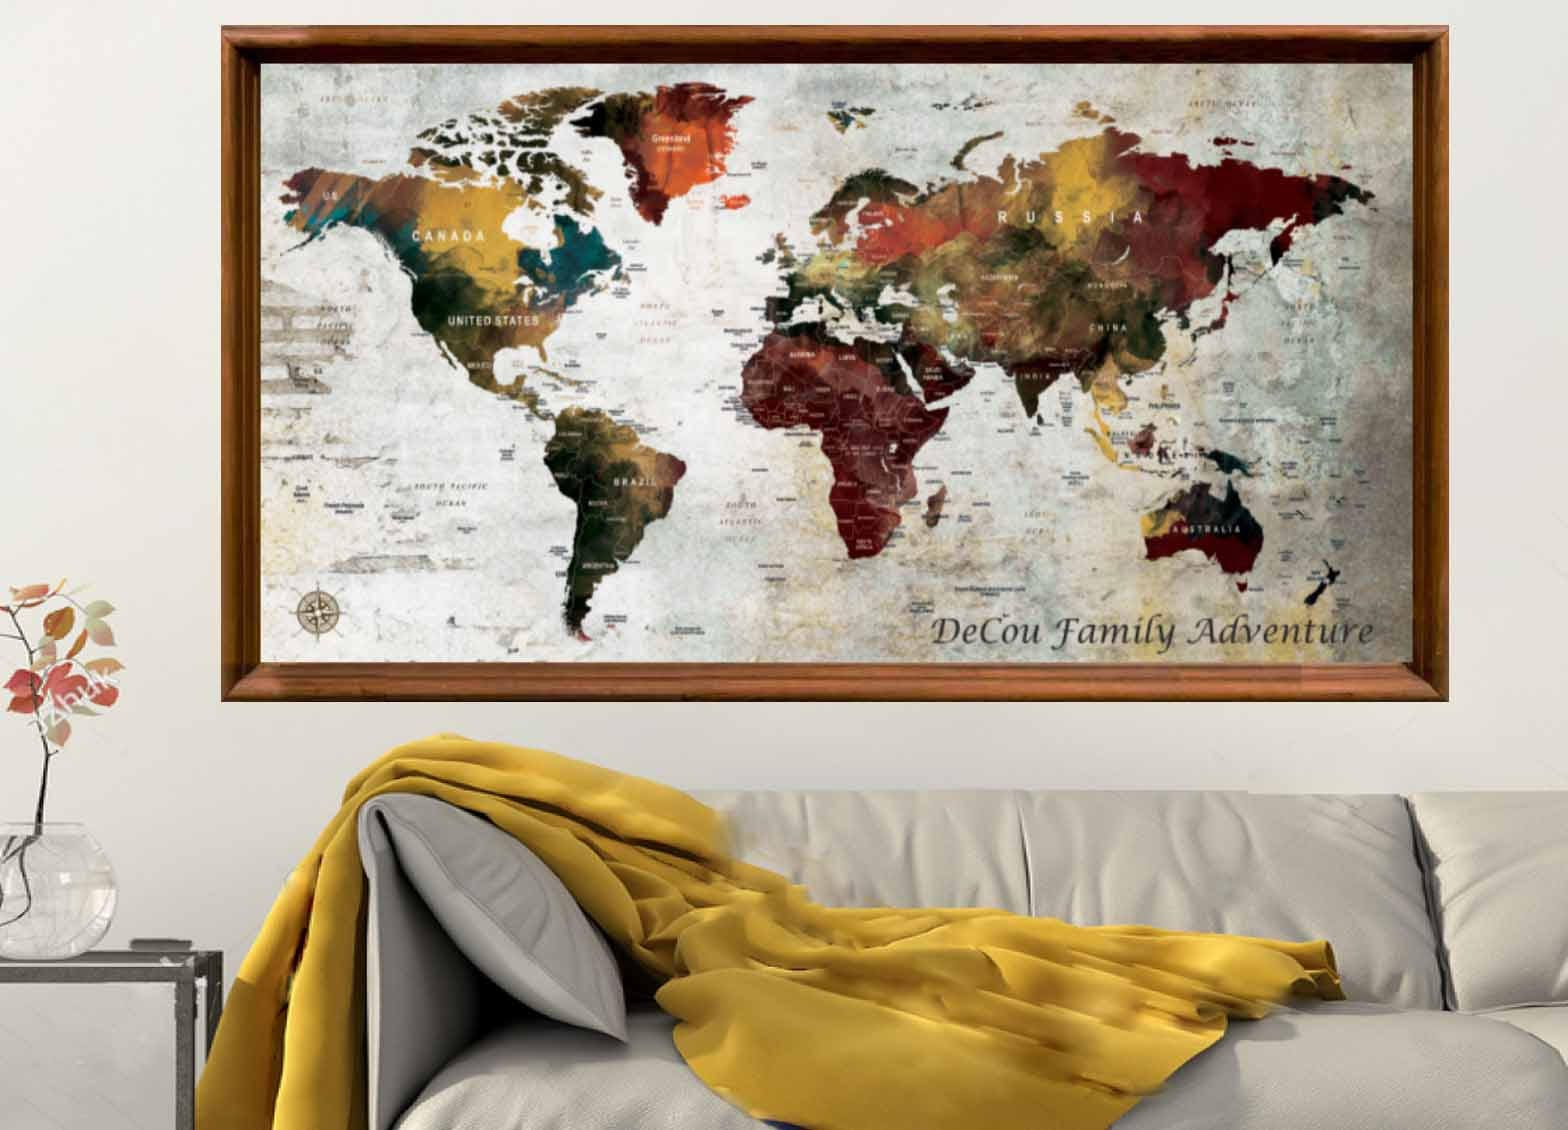 Large world map poster printworld map art posterpush pin map large world map poster printworld map art posterpush pin map posterworld map wall artworld map printworld map decalworld map art print gumiabroncs Image collections